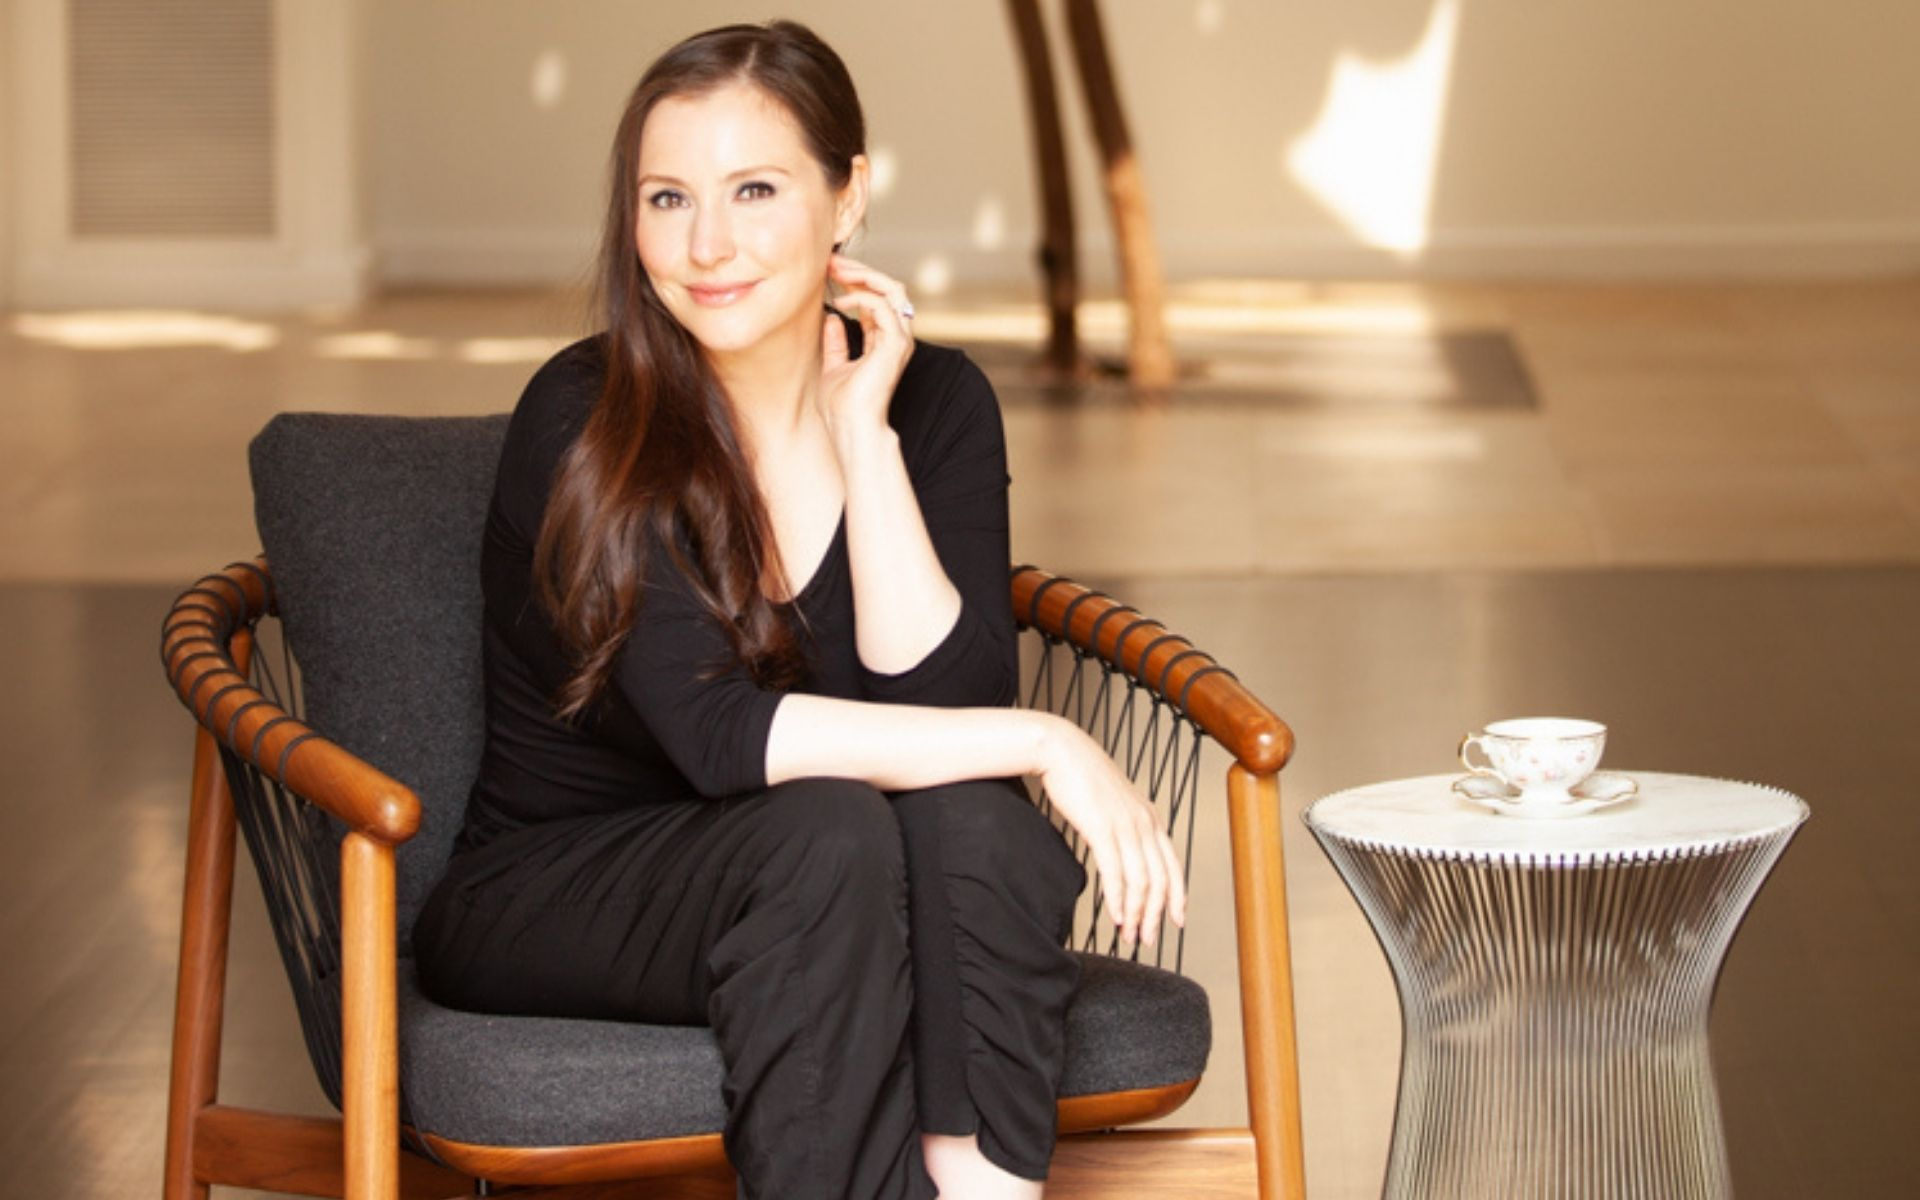 Sunday Riley Founder Shares Her Skincare Routine, Favourite Product and More